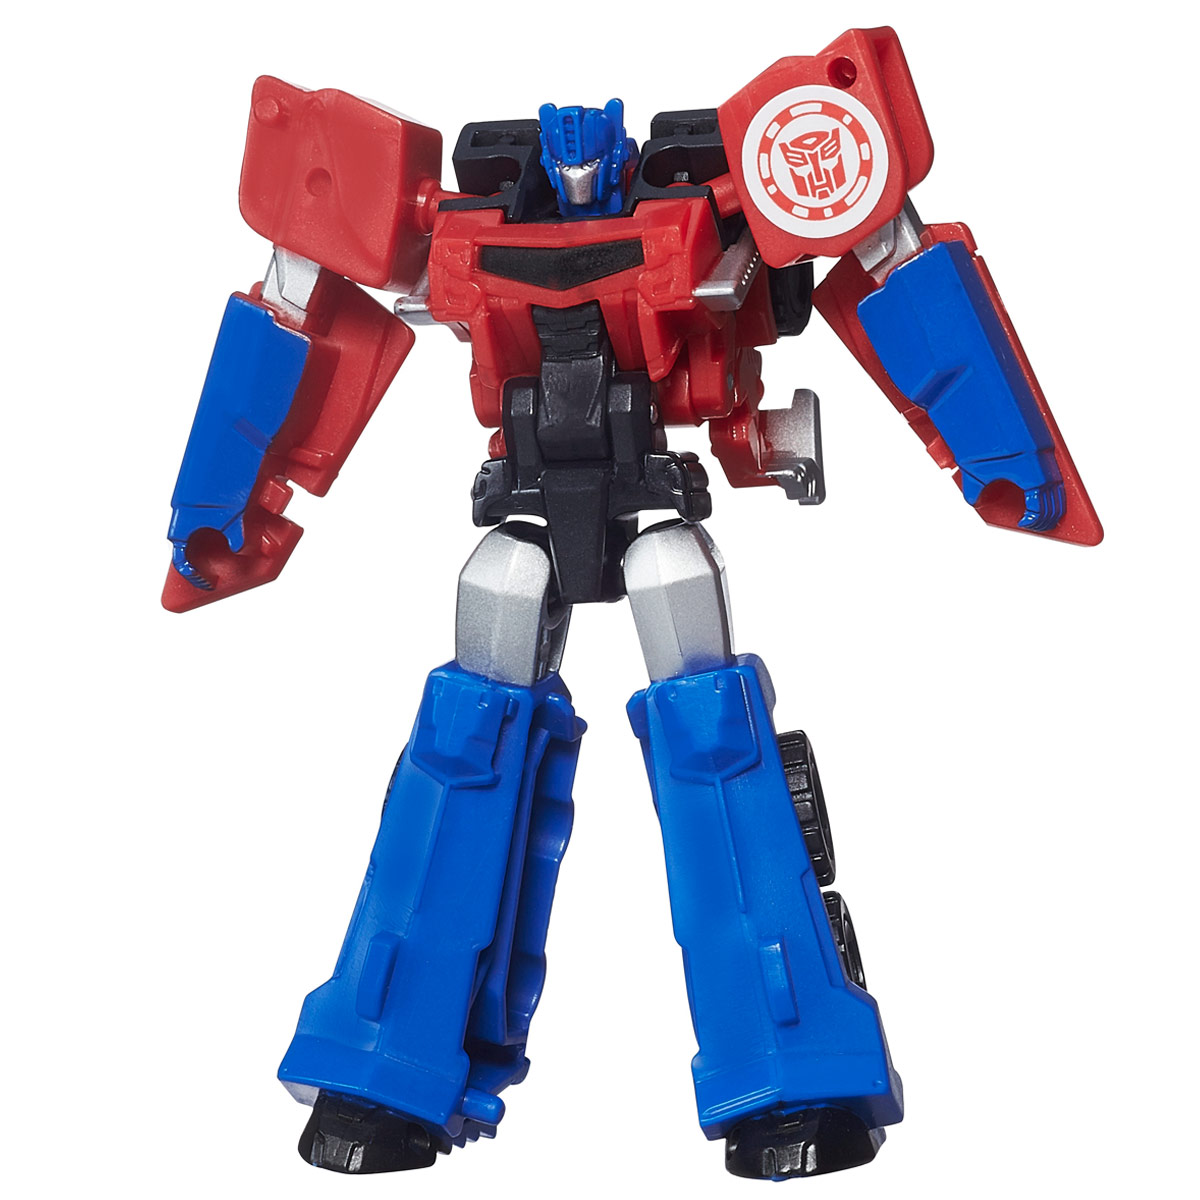 Transformers RID Legion: Optimus Prime rid dark optimus prime nemesis prime car robot classic toys for boys action figure 12cm with box d0087